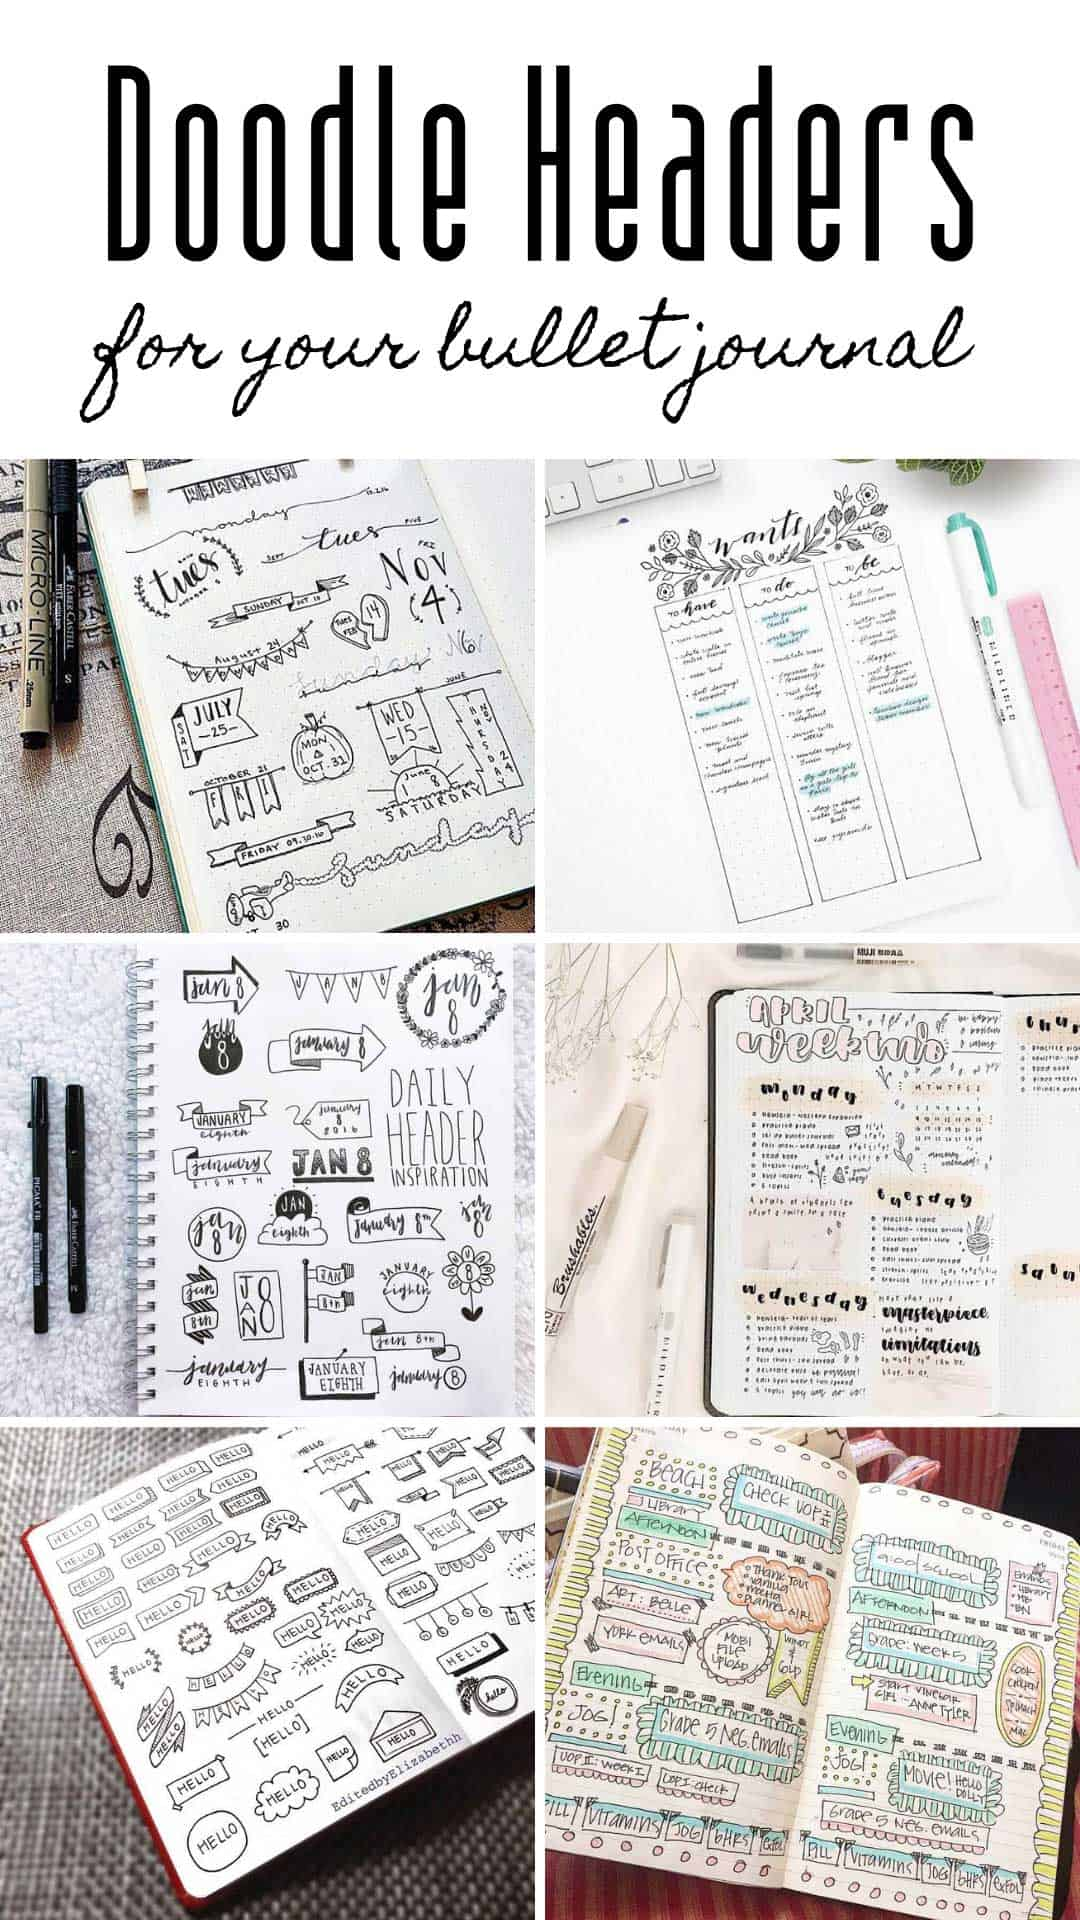 Check out these bullet journal header ideas to bring your weekly spreads and collections to life! #bulletjournal